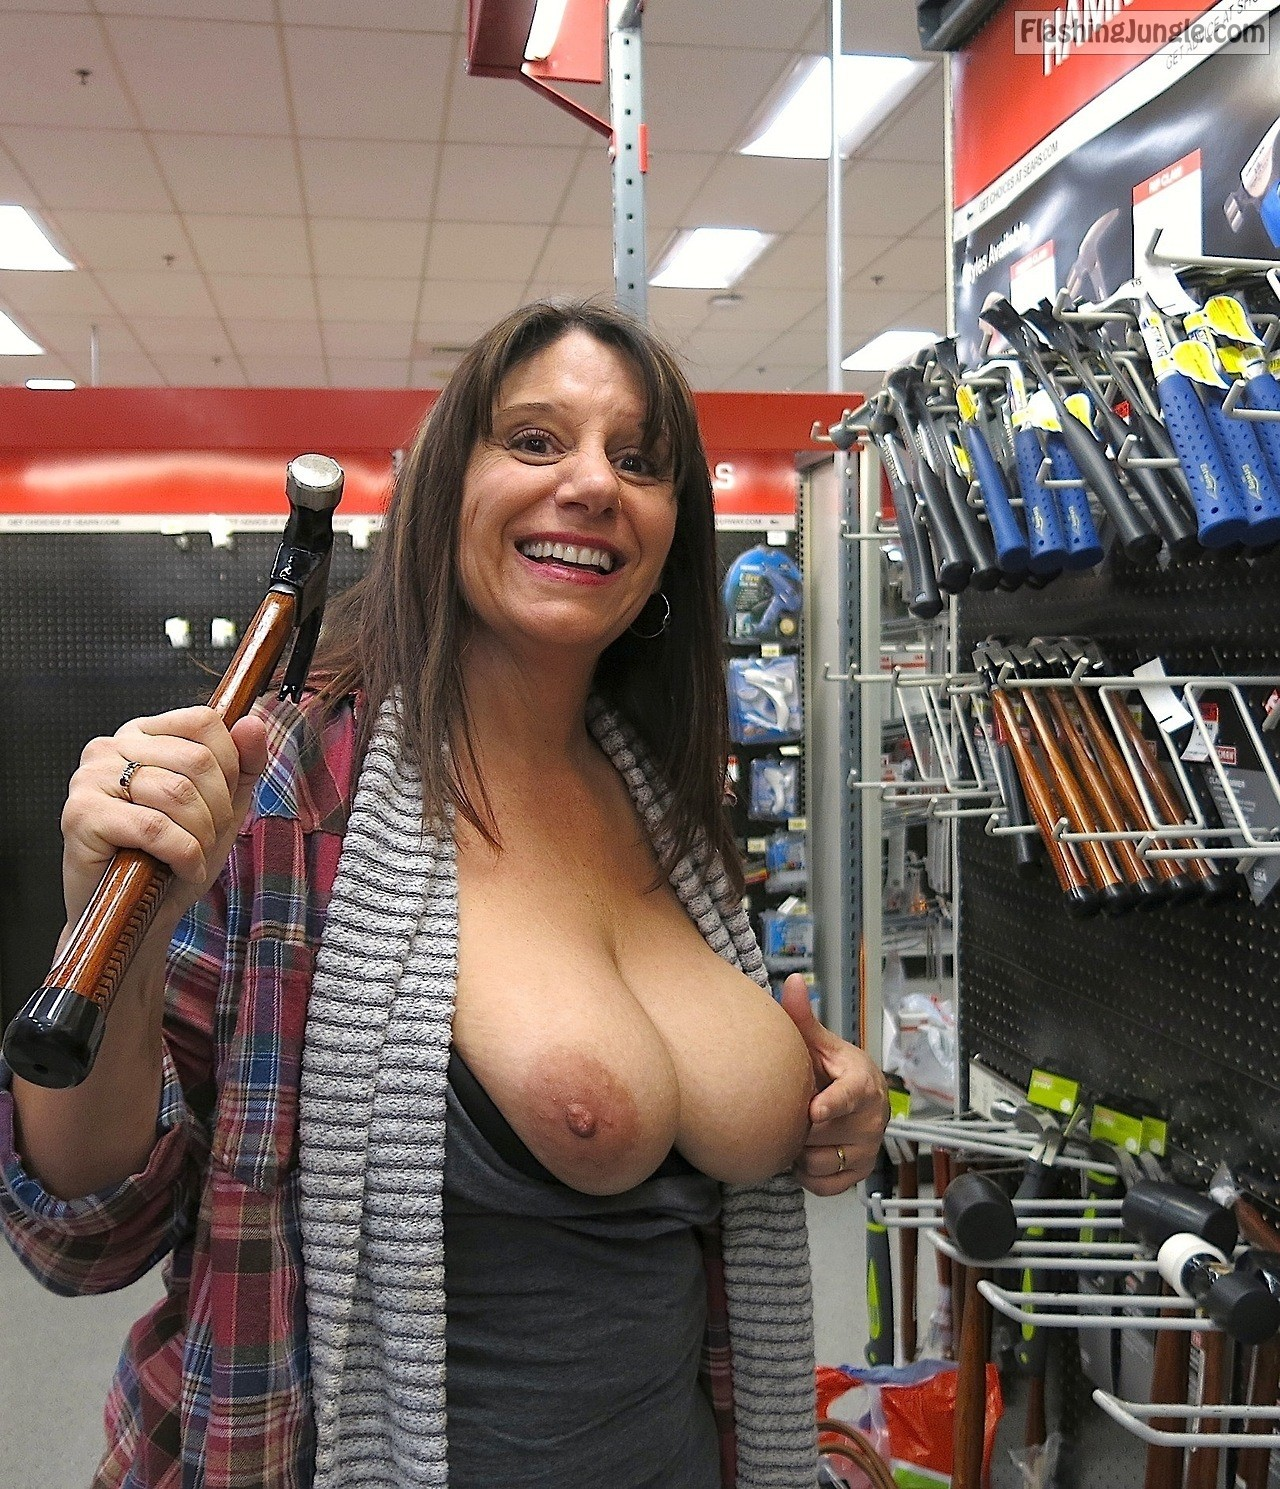 Mature Flashing Pics Flashing Store Pics Boobs Flash Pics